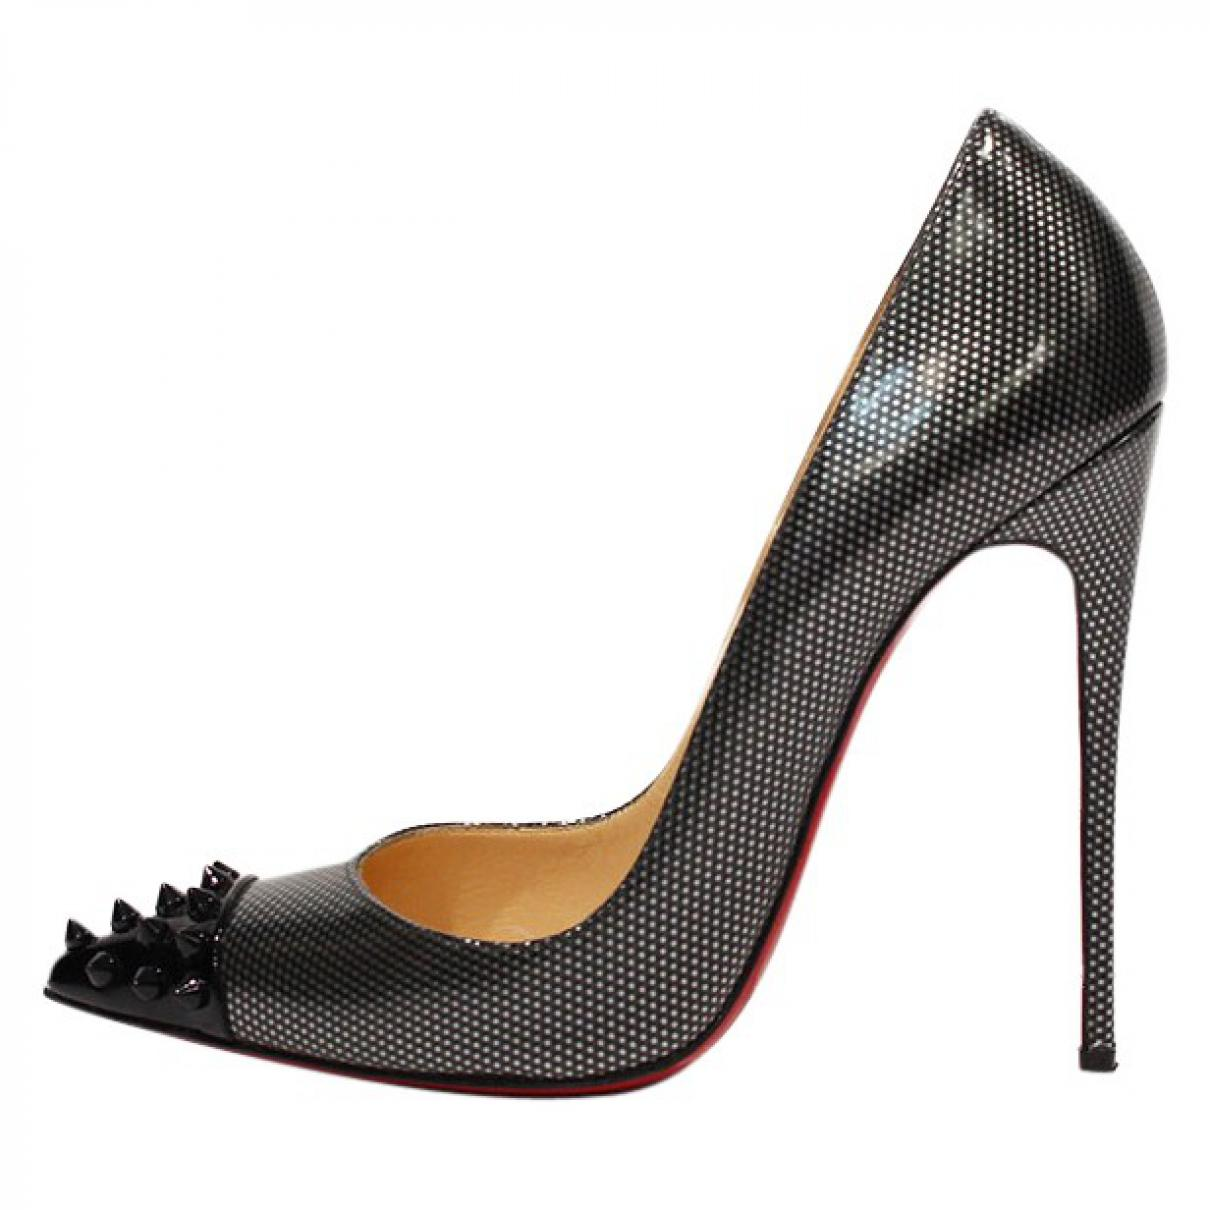 Sale Eastbay Pre-owned - Fifi python heels Christian Louboutin Cheap 2018 New Sale Online Buy Cheap Best Clearance Collections 4Nsqkg